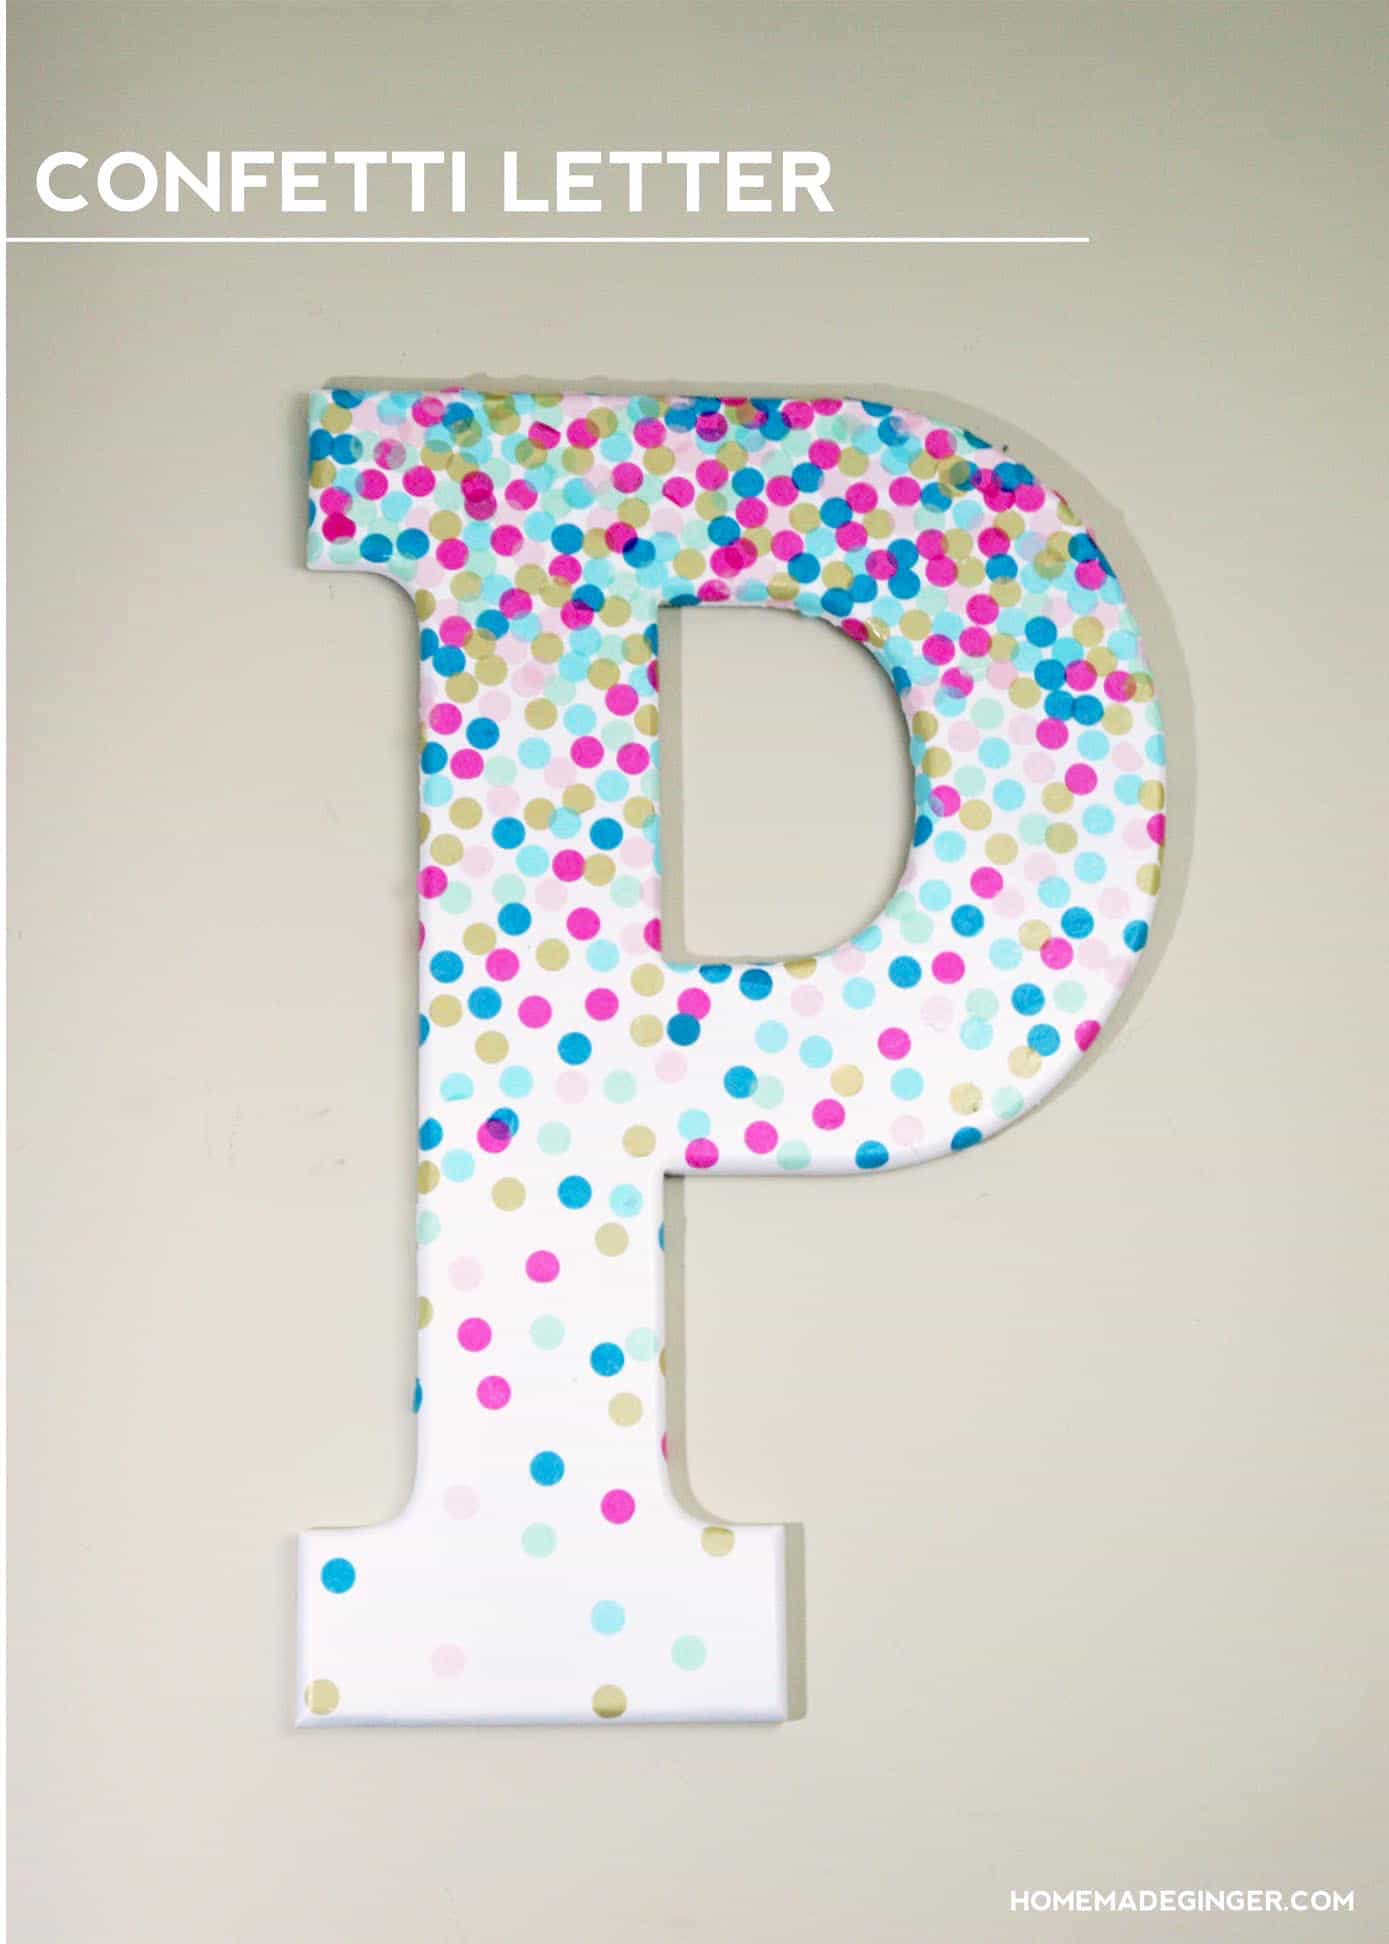 decorative letters with confetti